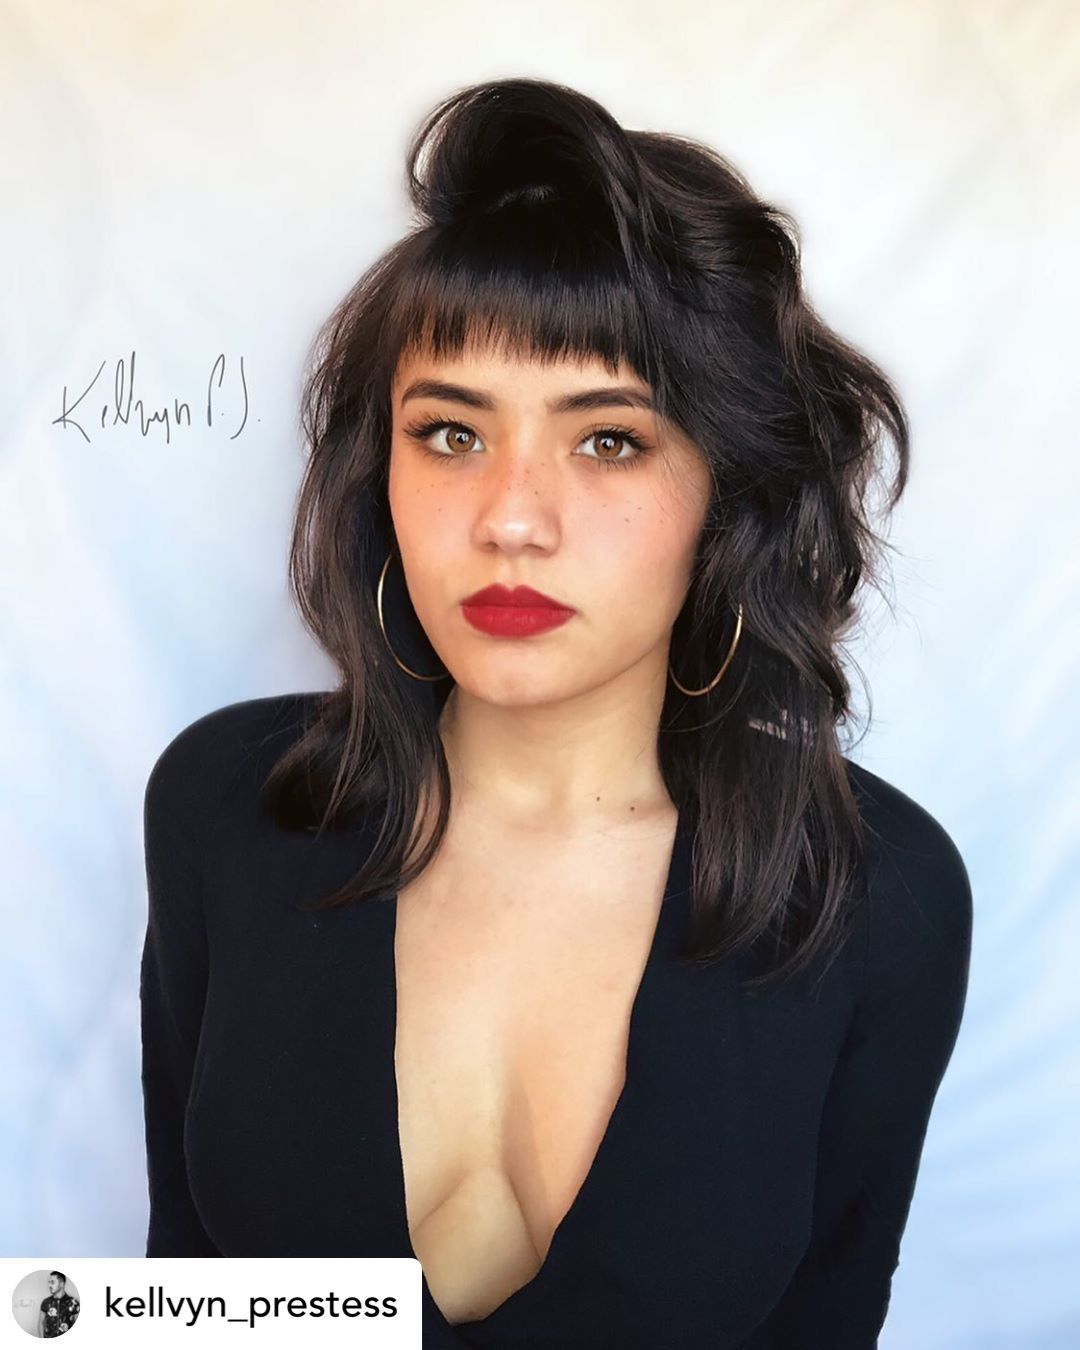 21 Baby Bangs Hairstyles That Will Make You Grab Your Scissors In 2020 Baby Bangs Long Hair Hairstyles With Bangs Short Hair Styles